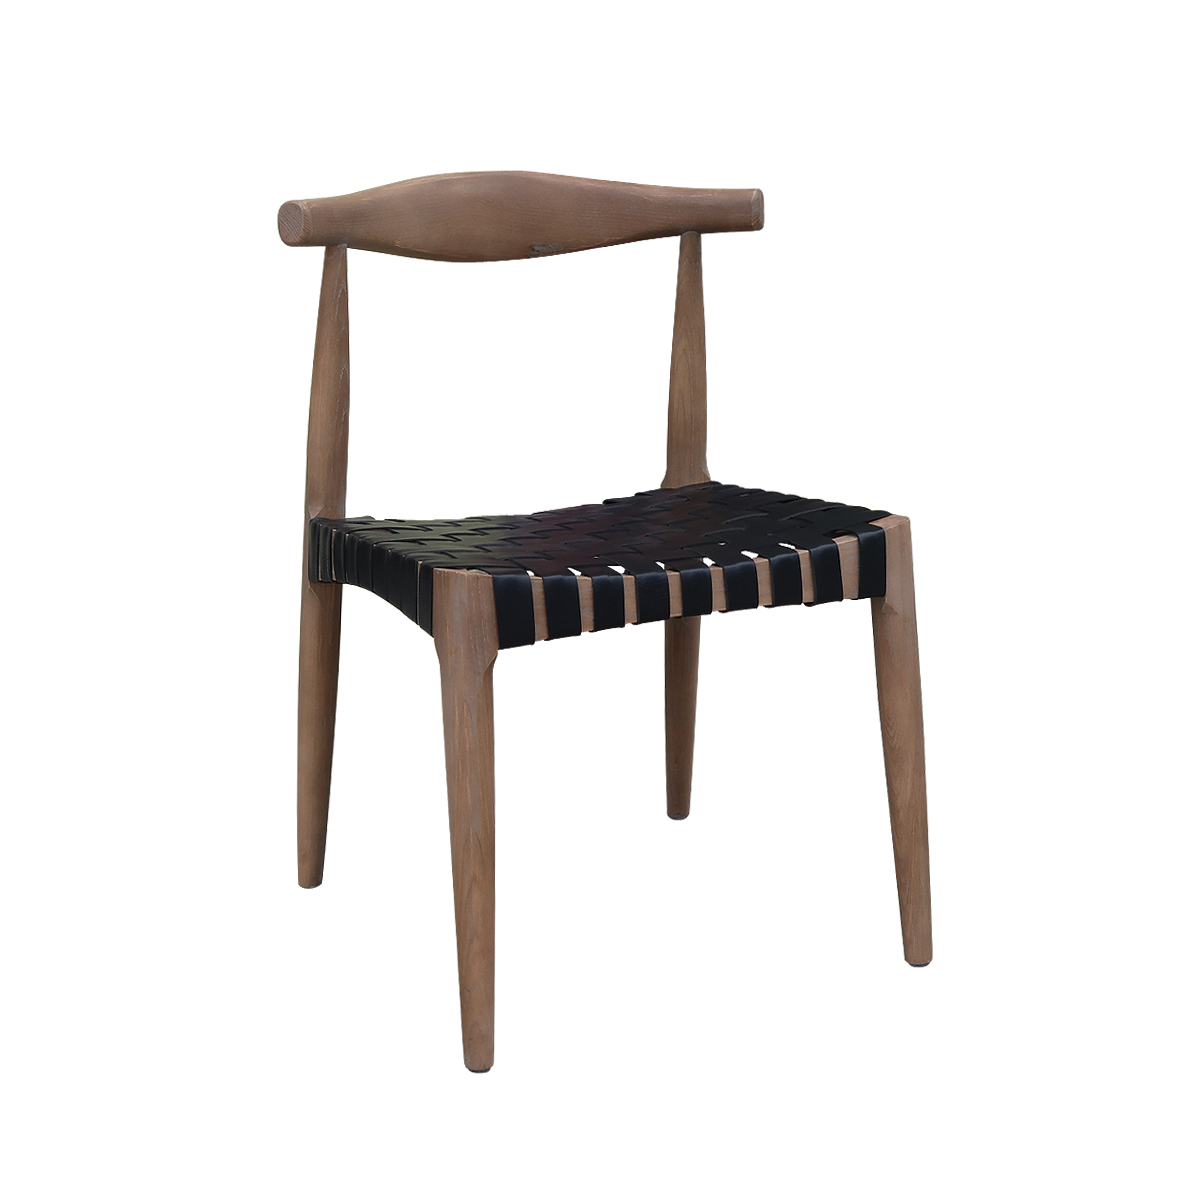 Sale Furniture Stores: Furniture Packages For Sale Perth